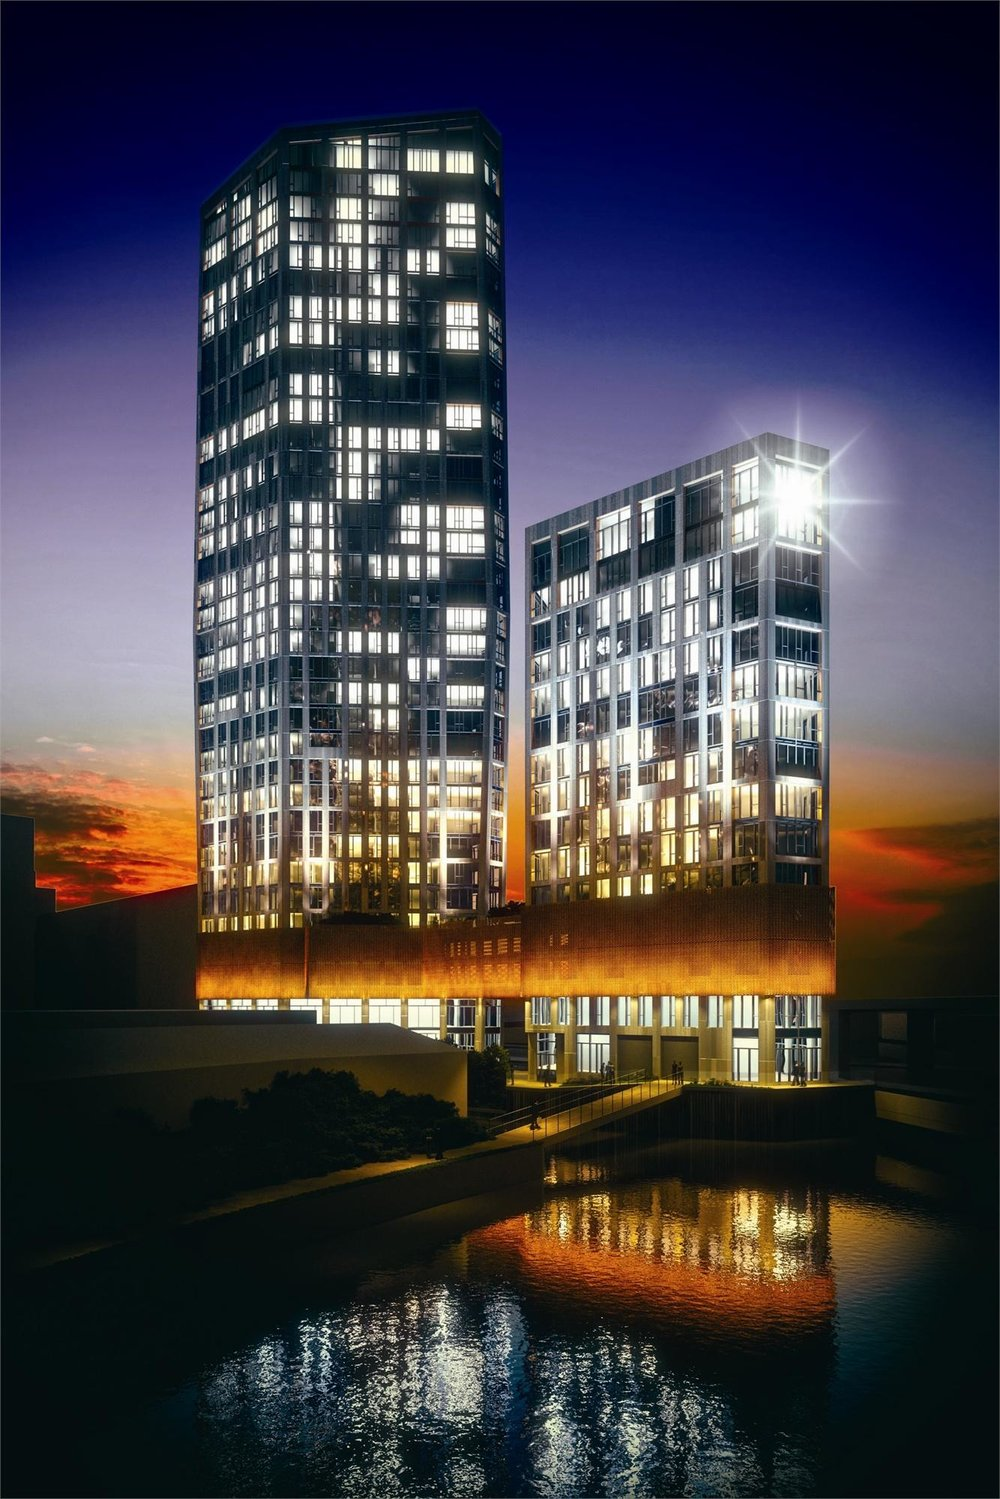 CGI showing building exterior at night